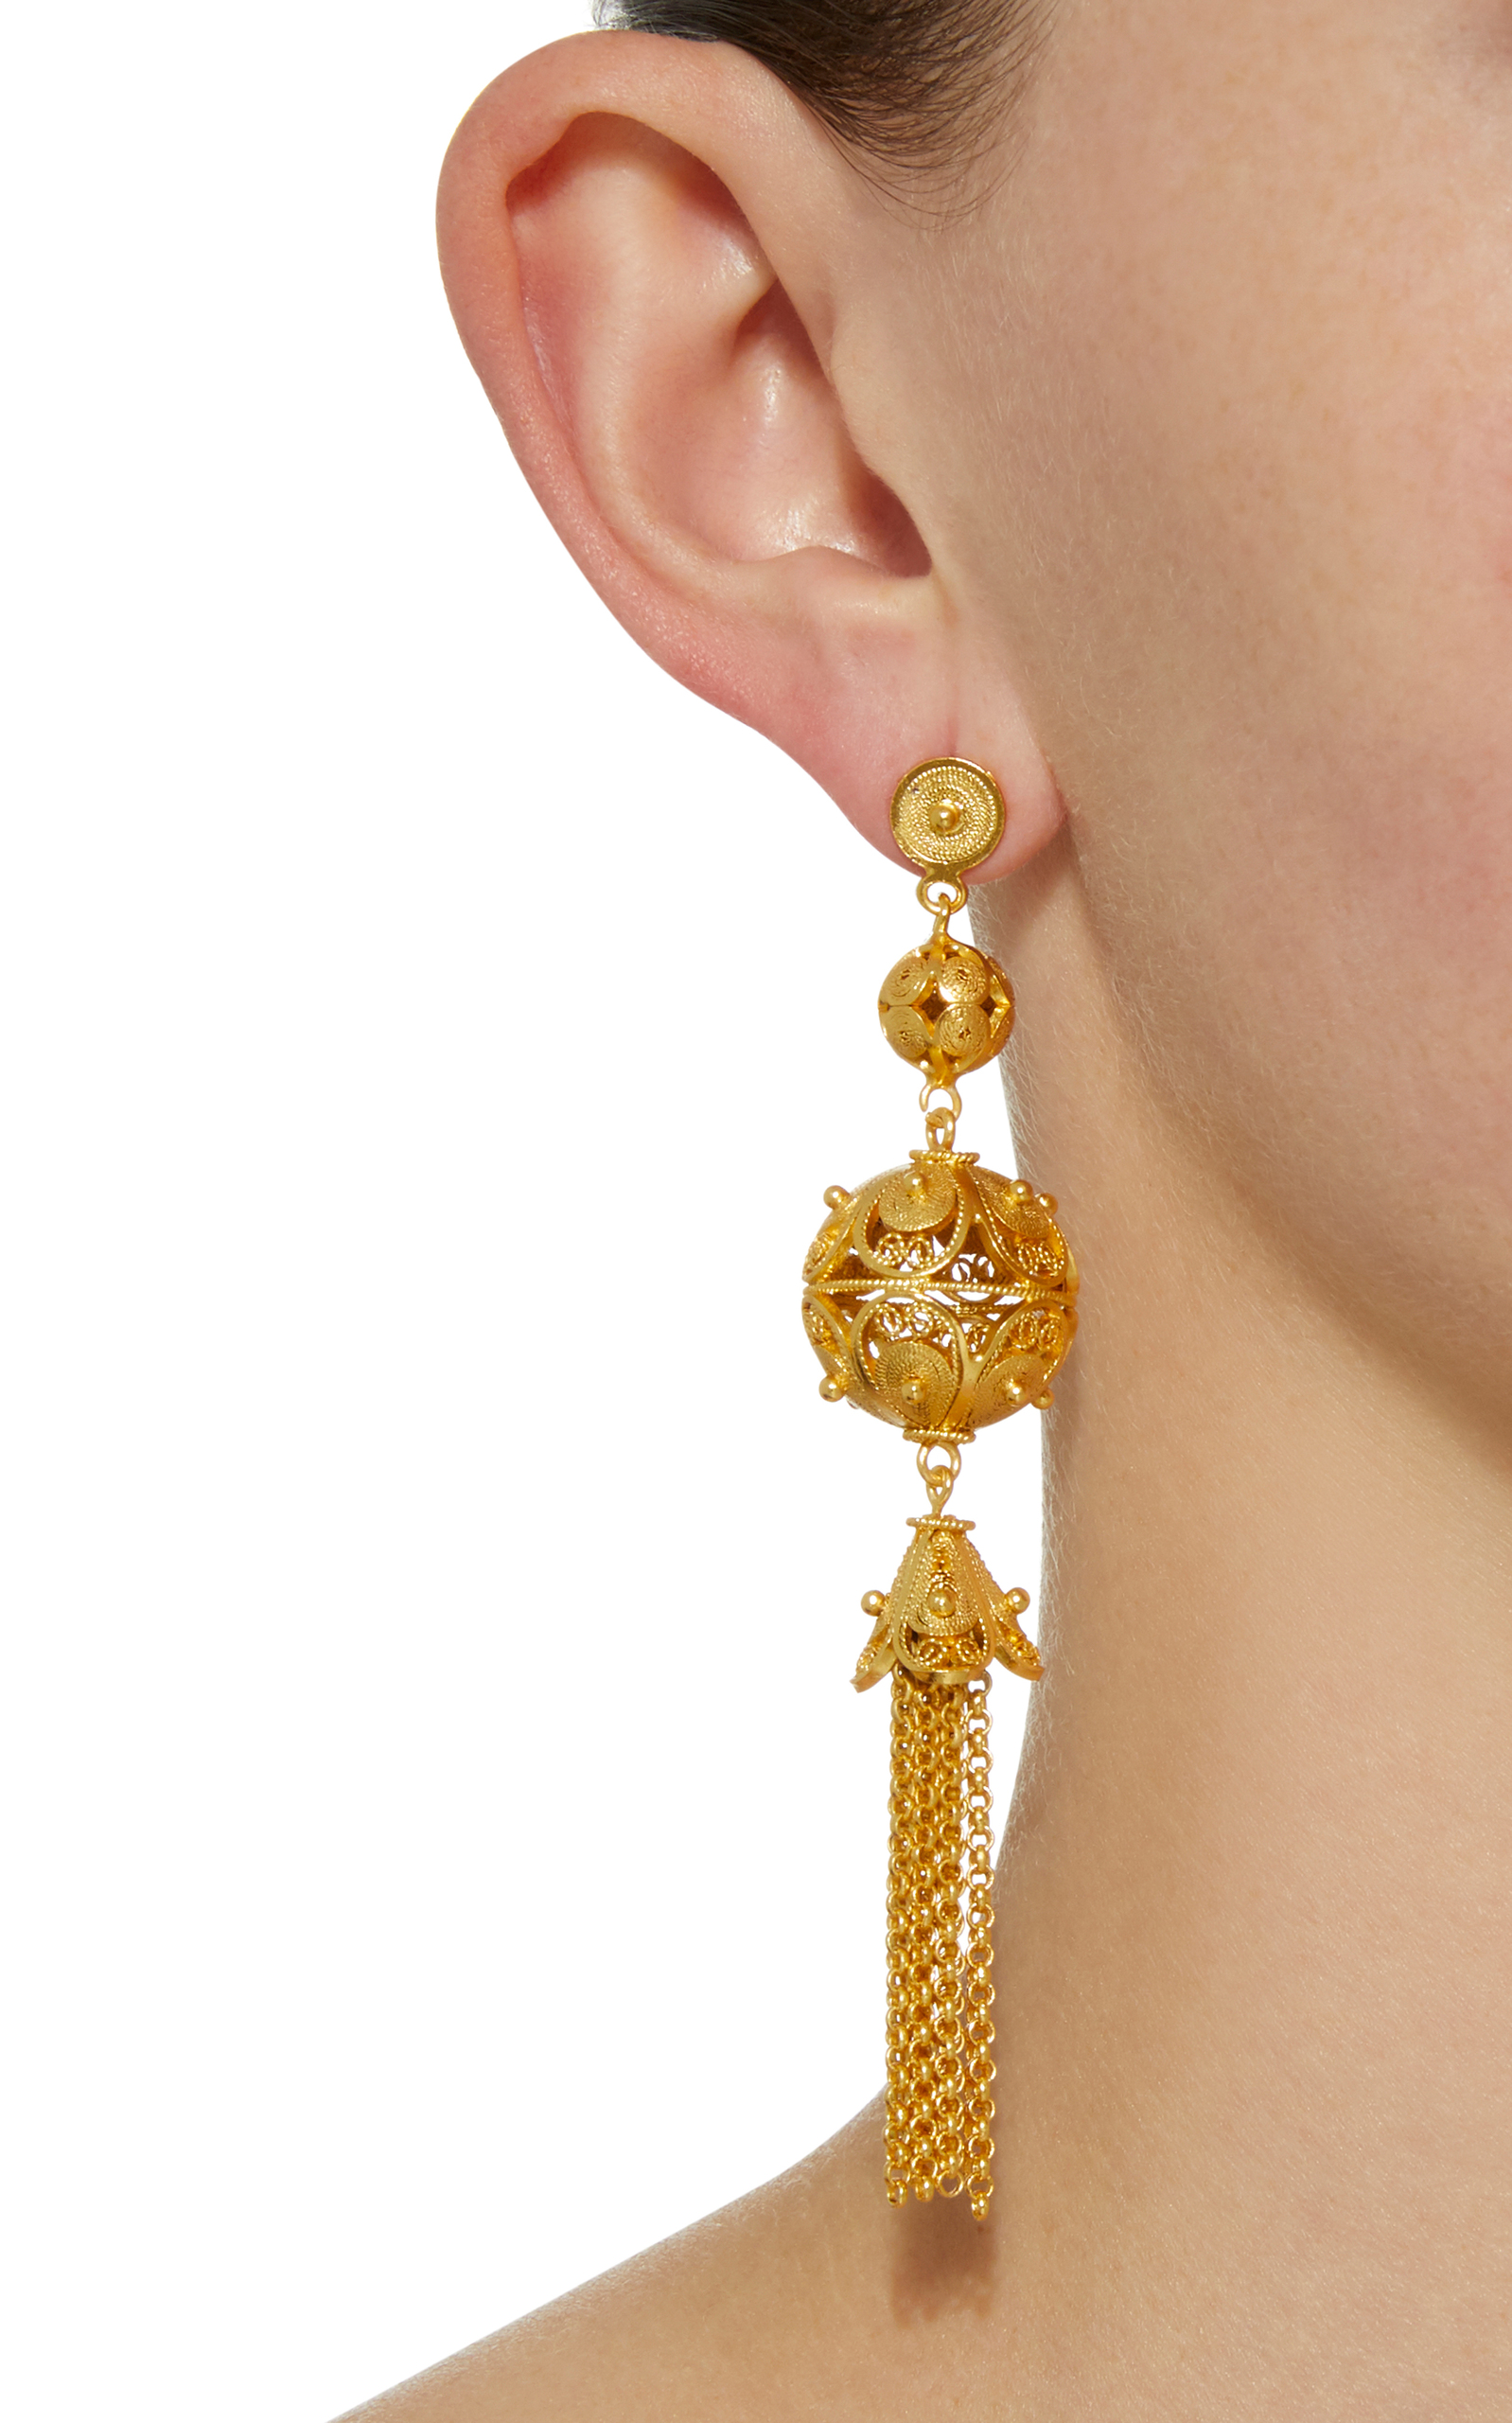 Professional Online Classic Sale Online Gala Embellished Ball and Tassel Earrings Mallarino Free Shipping Geniue Stockist 2018 Unisex Cheap Online Pay With Visa Sale Online agMVfzY